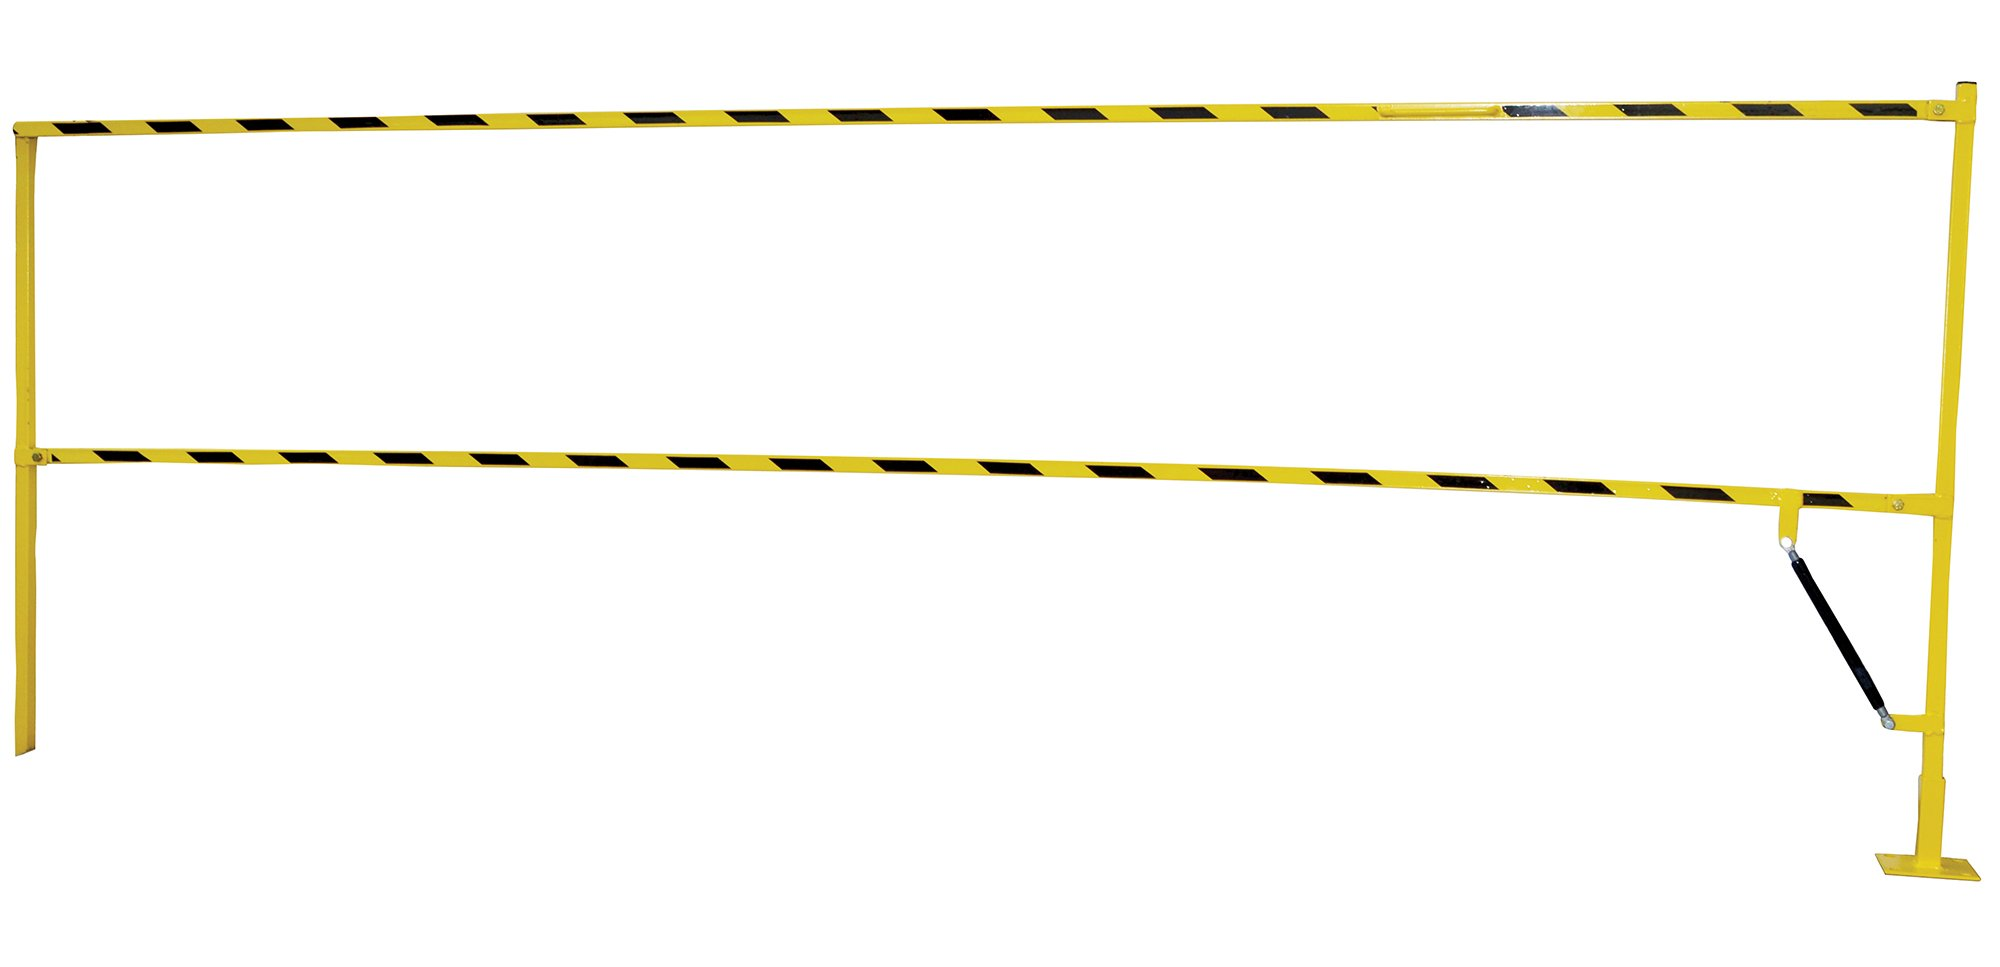 Vestil SLG-10 Safety Lift Gate, Overall W x L x H (in.) 121-3/4 x 4 x 43-3/4, Overall Height Raised (in.) 159, Overall Height Lowered (in.) 43-3/4, Yellow